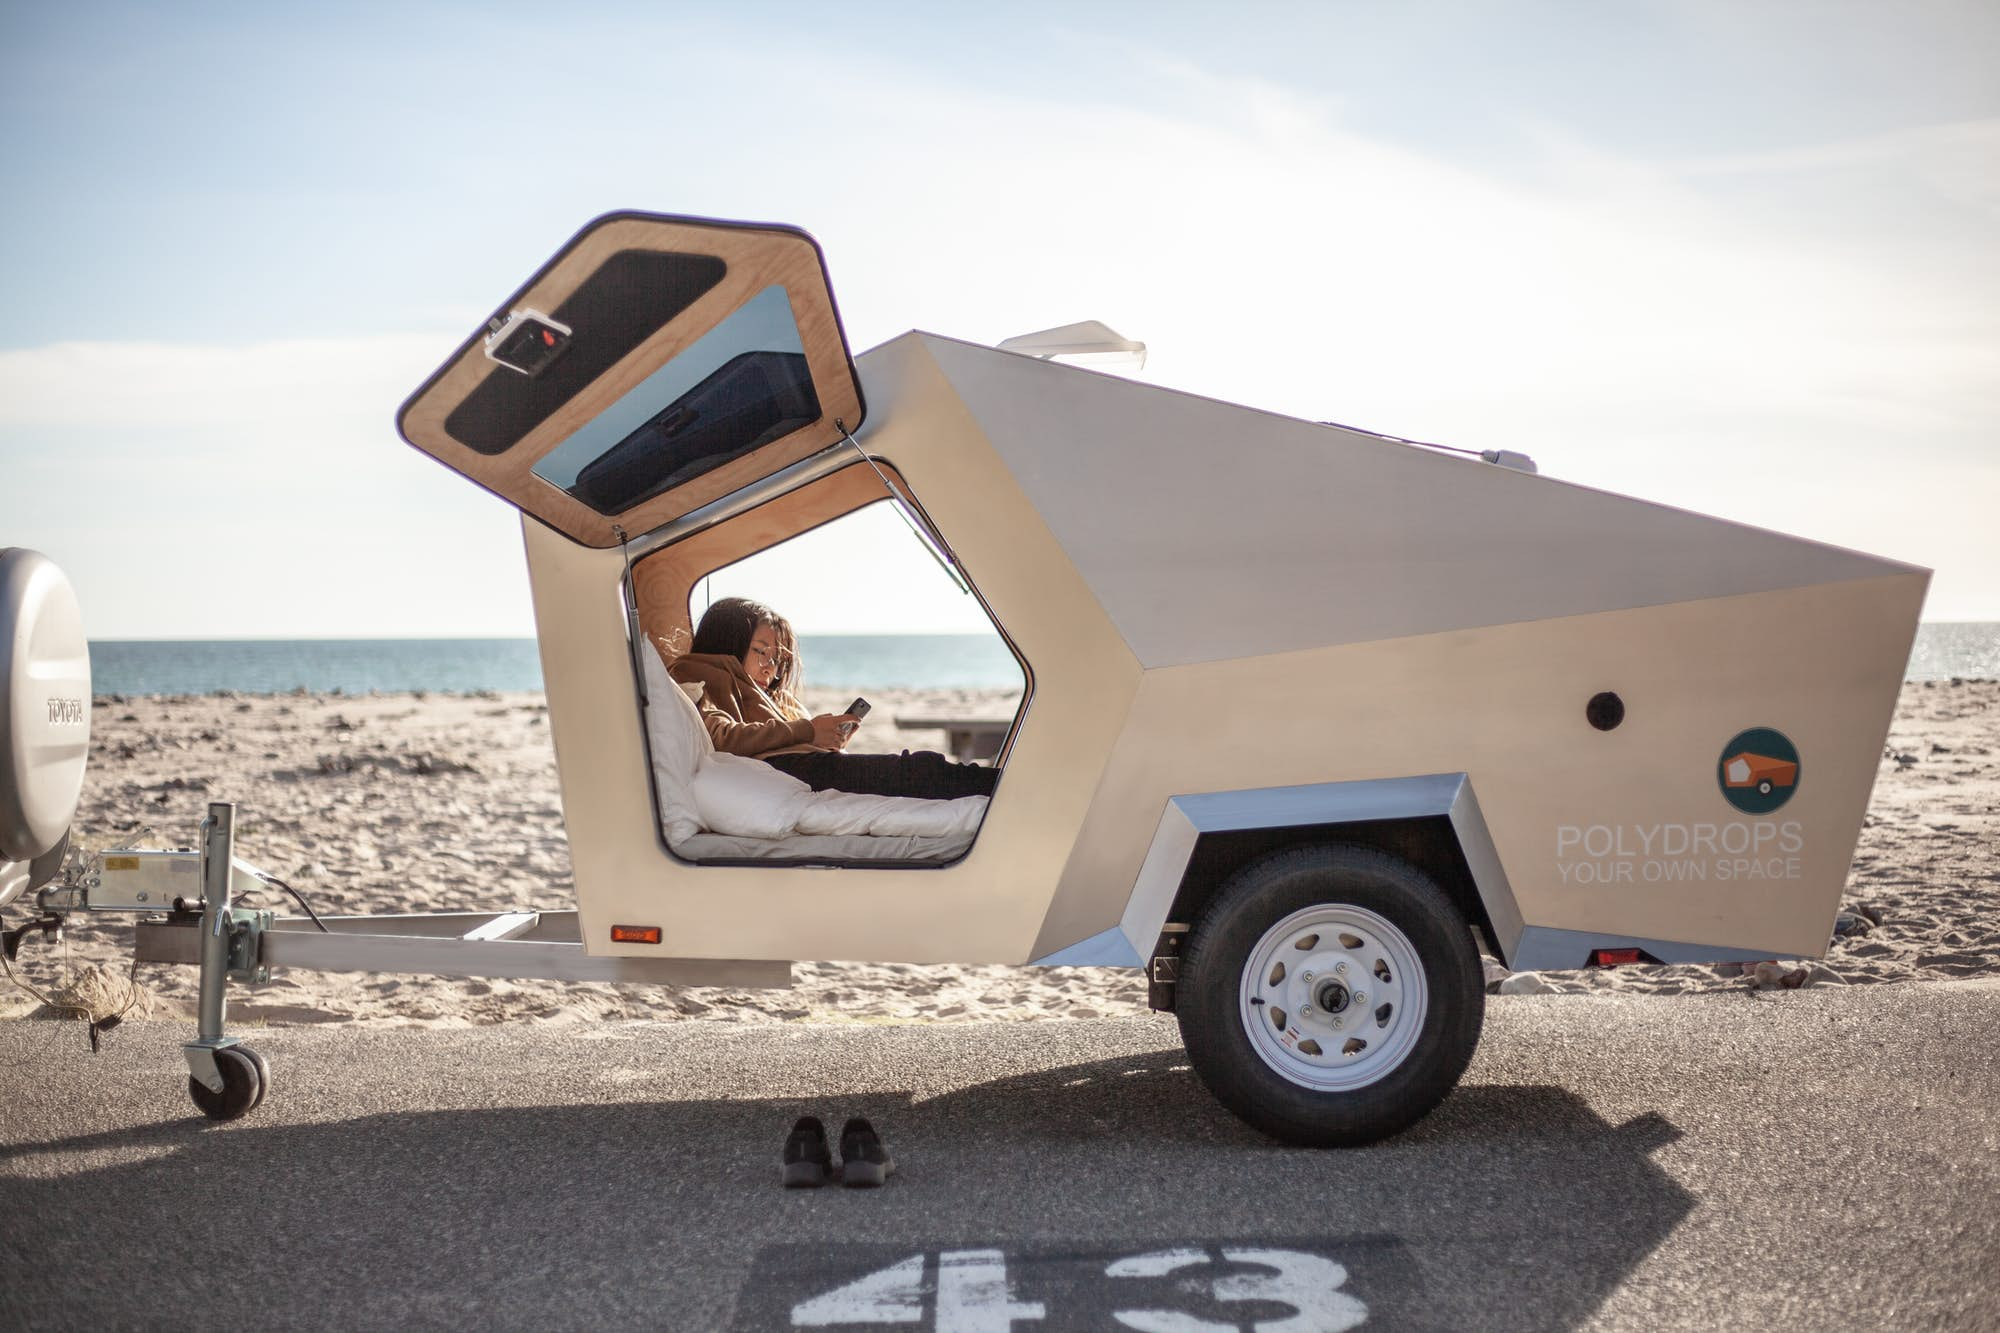 A white camper trailer in a desert. There are people in the trailer lounging on a bed.